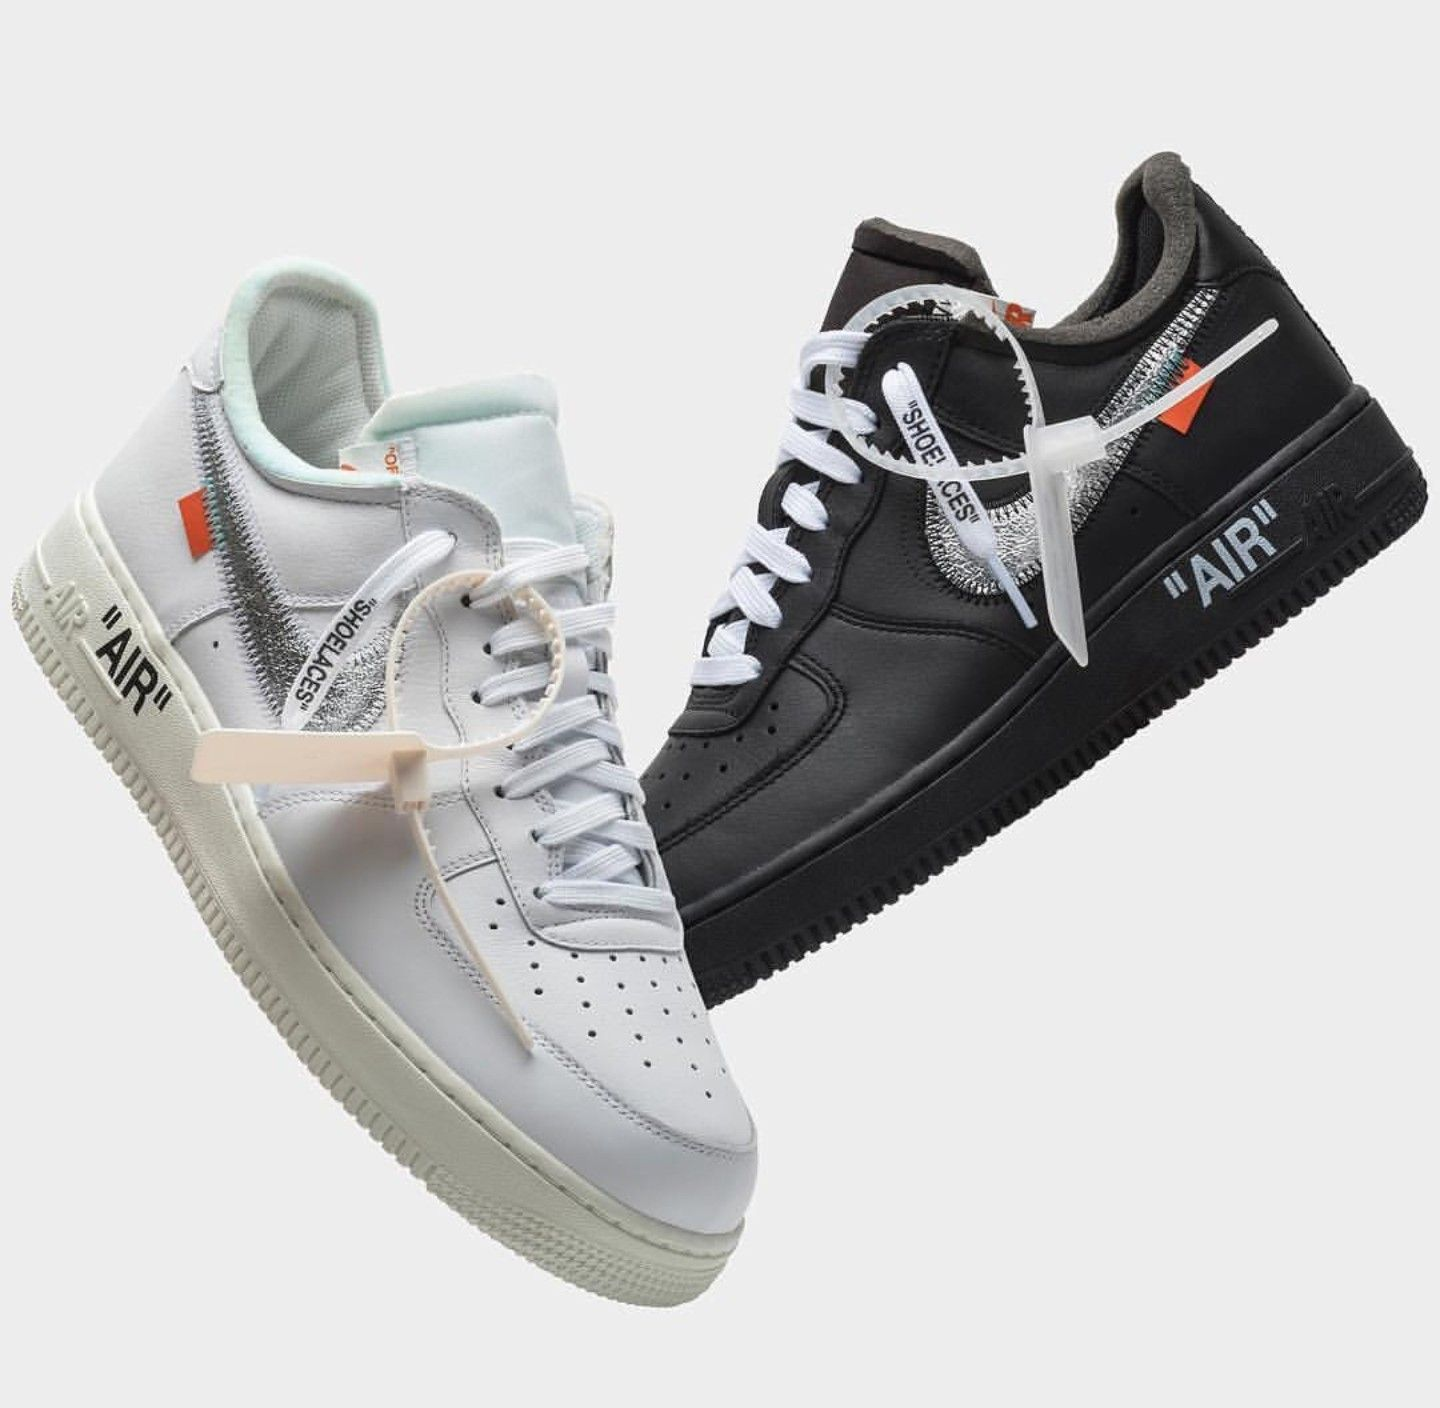 MOMA complexcon exclusive air force 1 x OW | skor | Skor